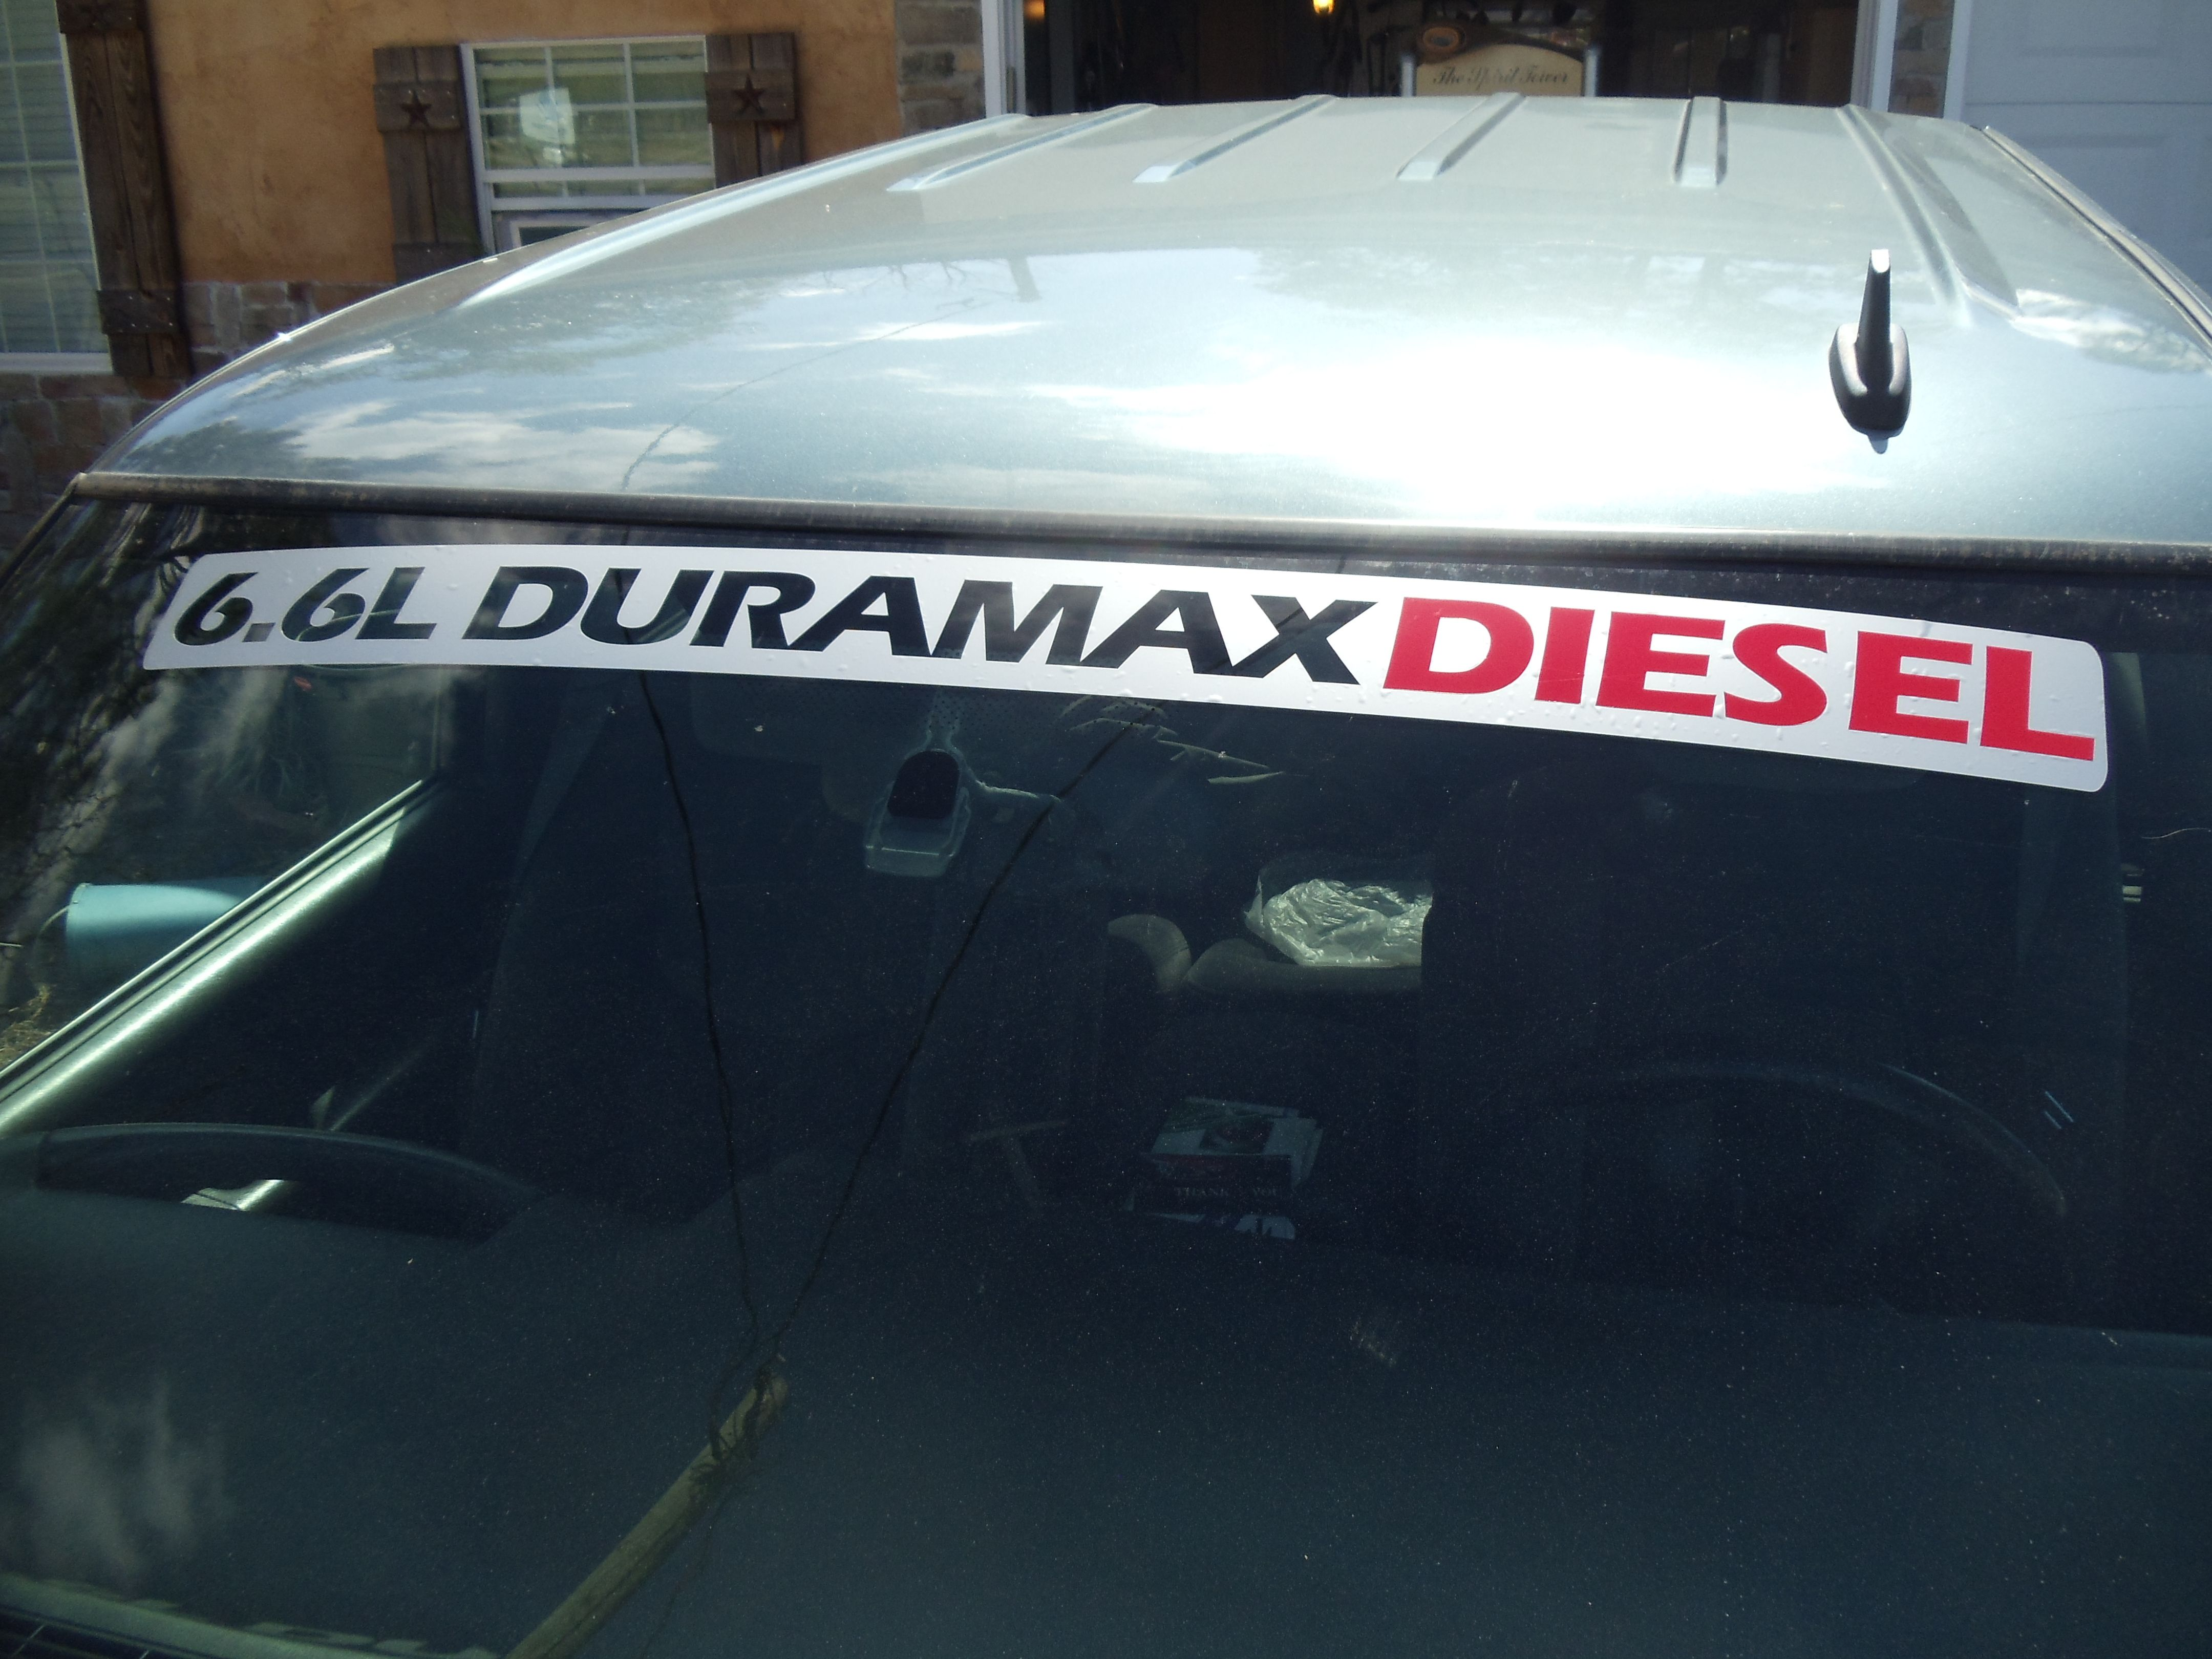 L DURAMAX DIESEL Windshield Topper Decal Chevy Pinterest - Chevy duramax diesel decals